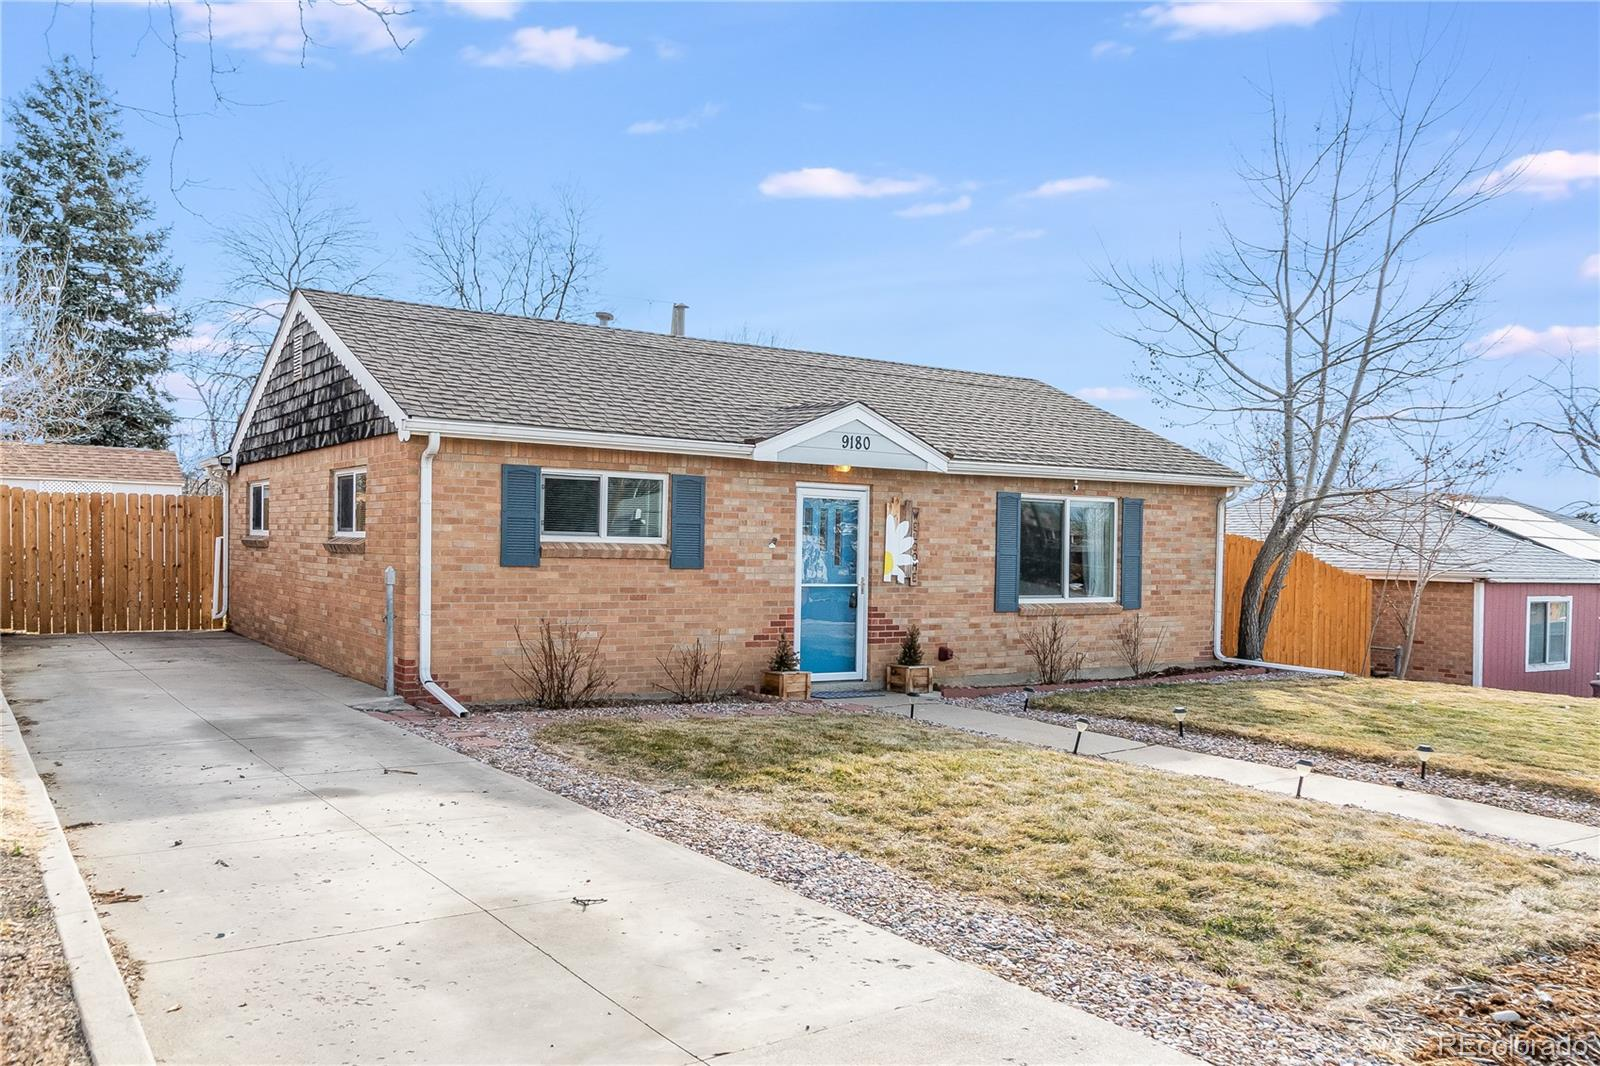 MLS# 3071138 - 23 - 9180 Emerson Street, Thornton, CO 80229